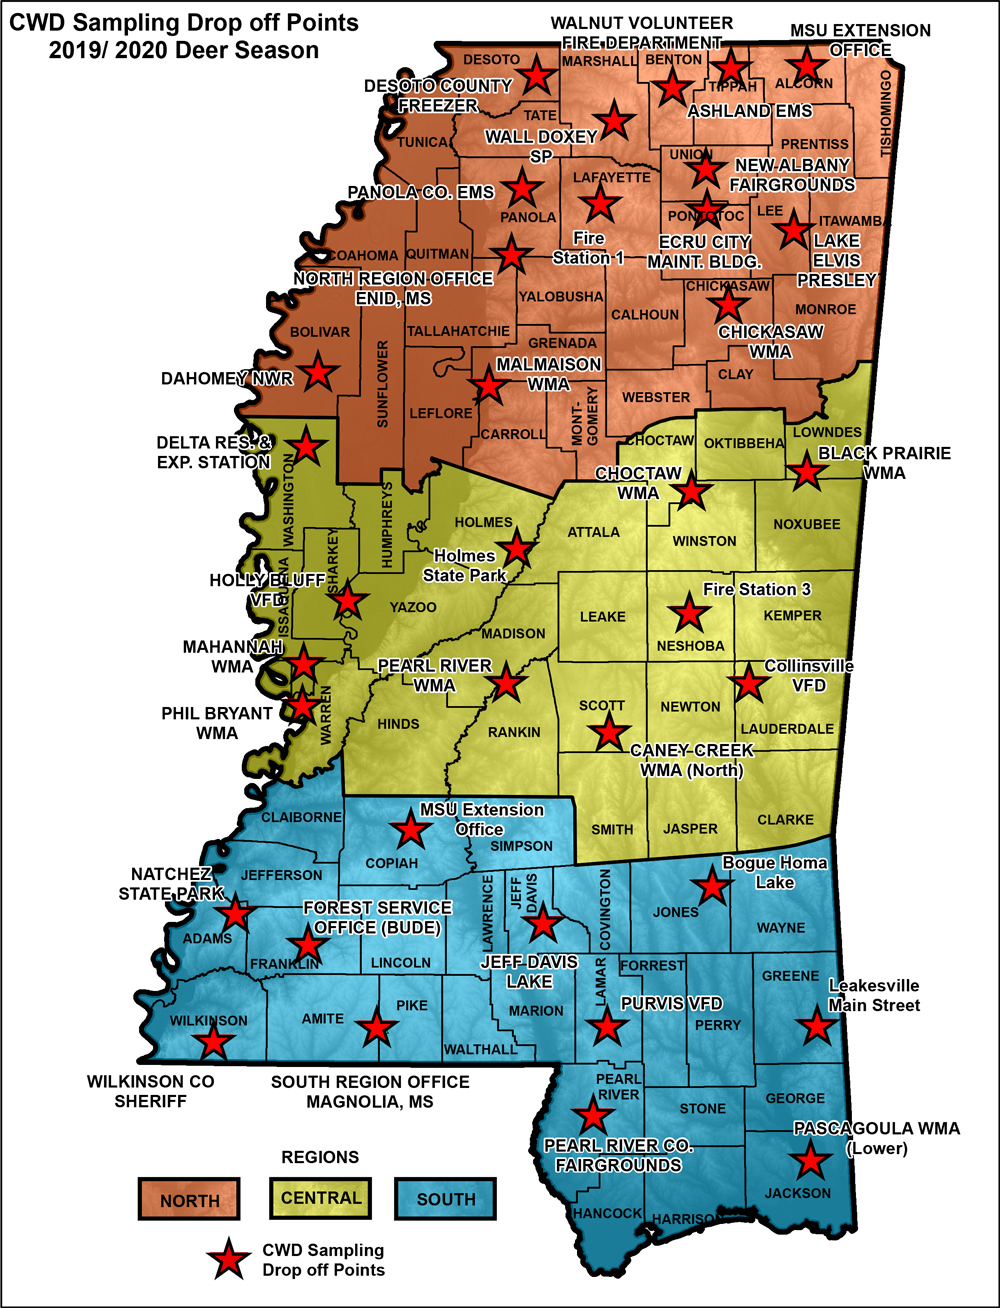 MDWFP - Sample Collection on desoto zoning map, desoto county map, desoto parish line map, desoto parish school zone map, desoto traffic map,